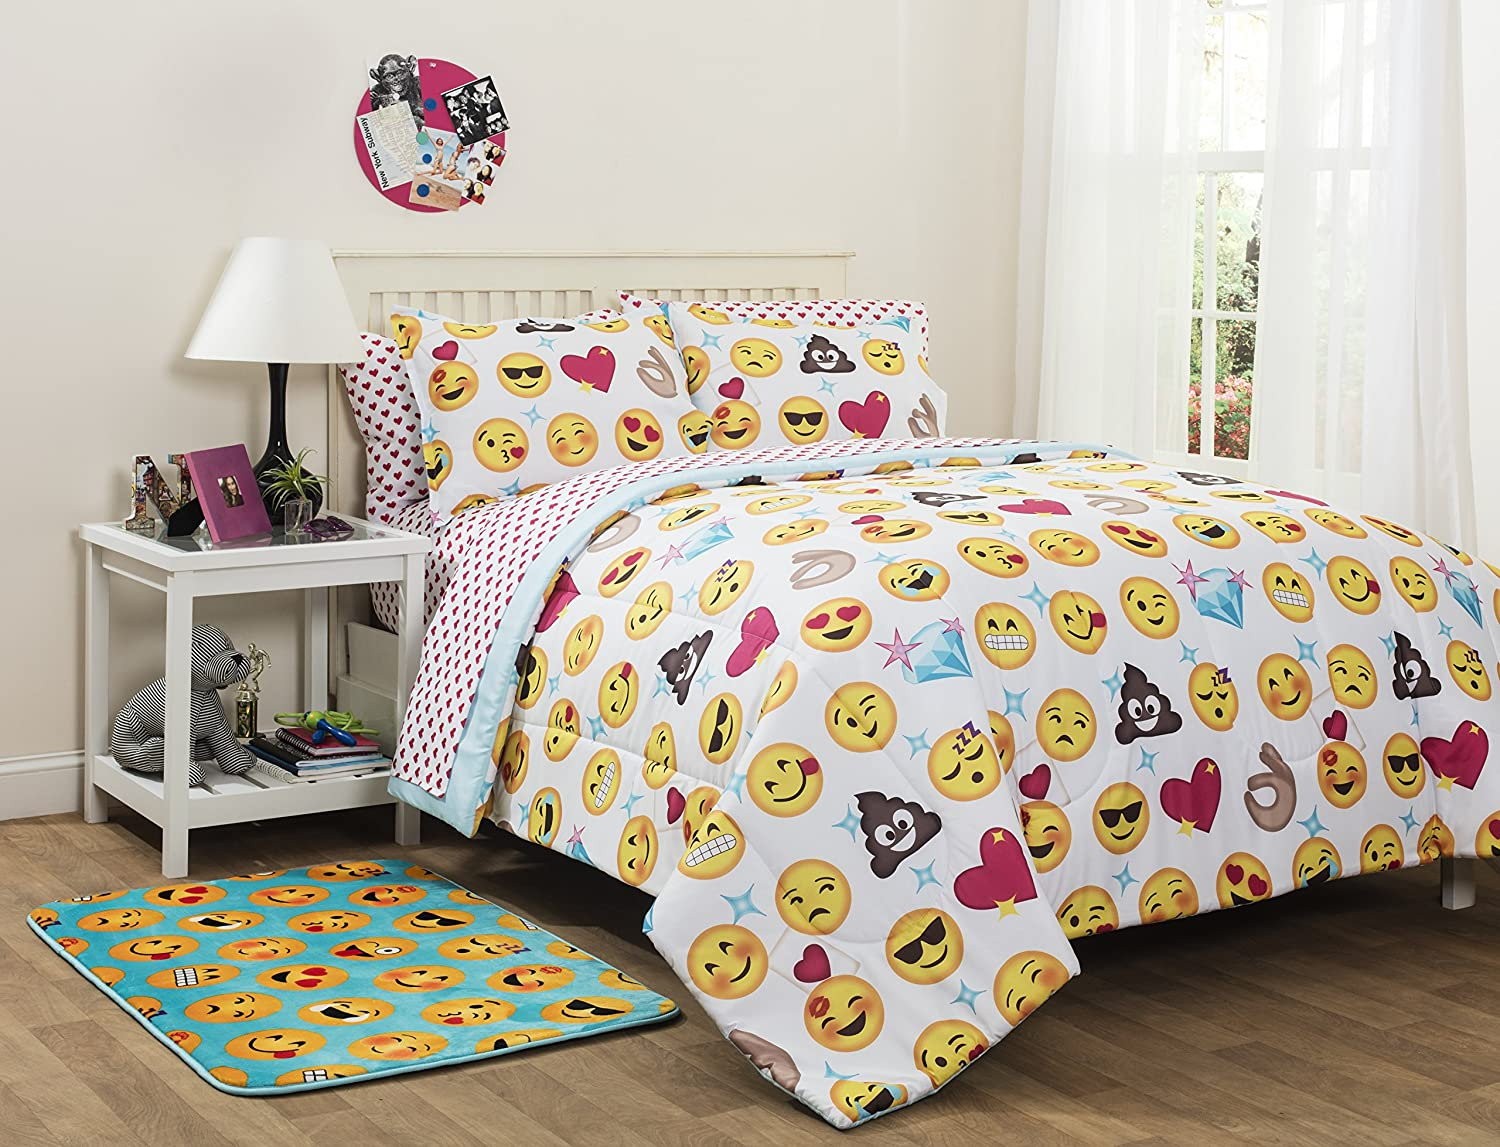 Emoji Pals Bed in a Bag, Twin - NK680291